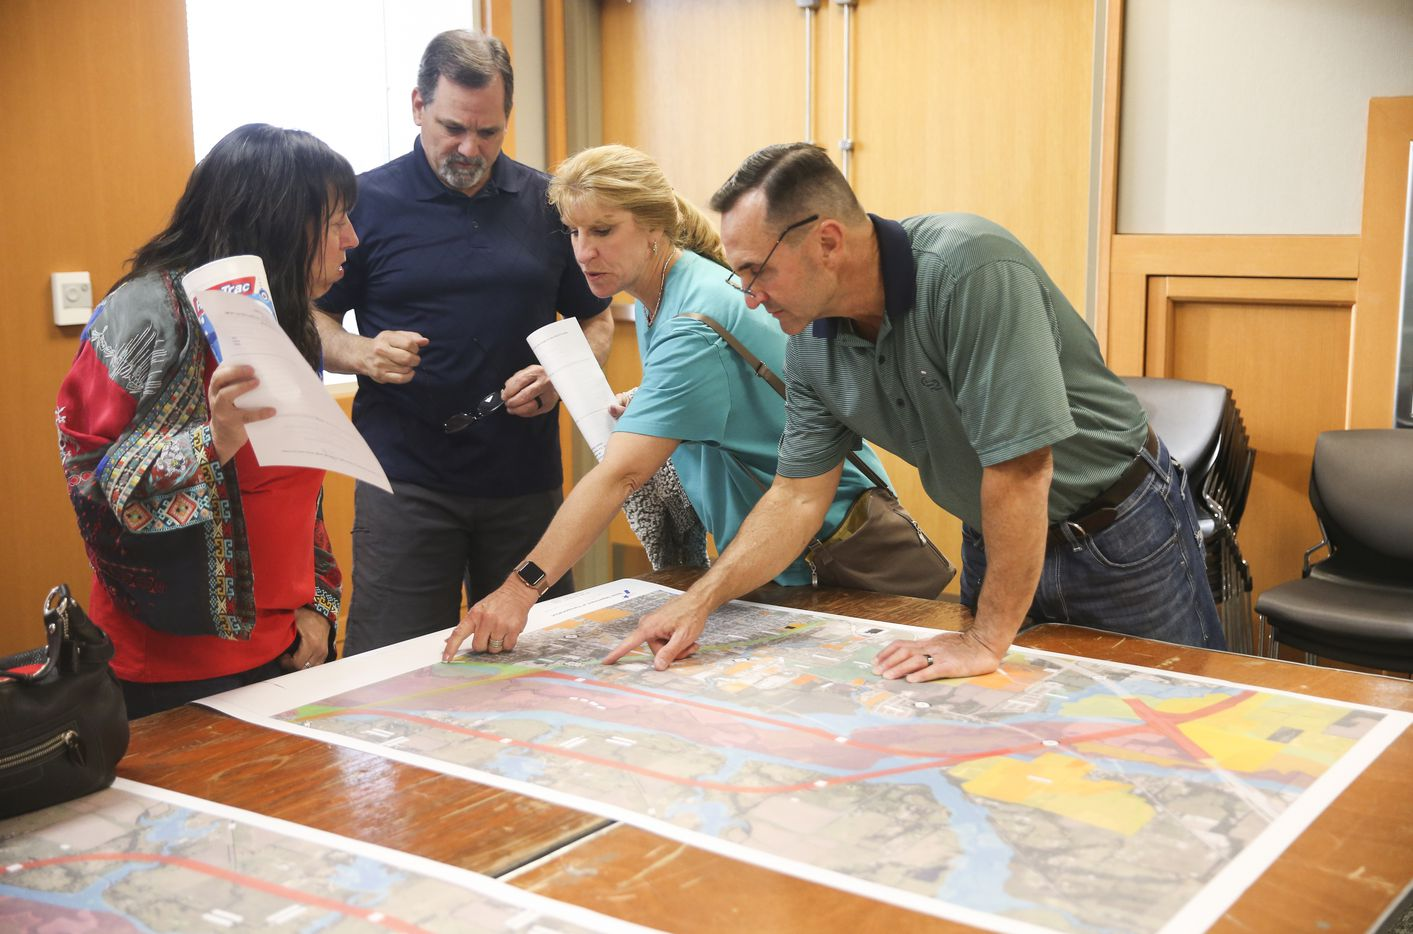 Community members discuss proposed routes for a U.S. 380 bypass during a Texas Department of Transportation open house to display new U.S. 380 alignment maps Thursday, March 21, 2019 at the Russell A. Steindam Courts Building in McKinney.